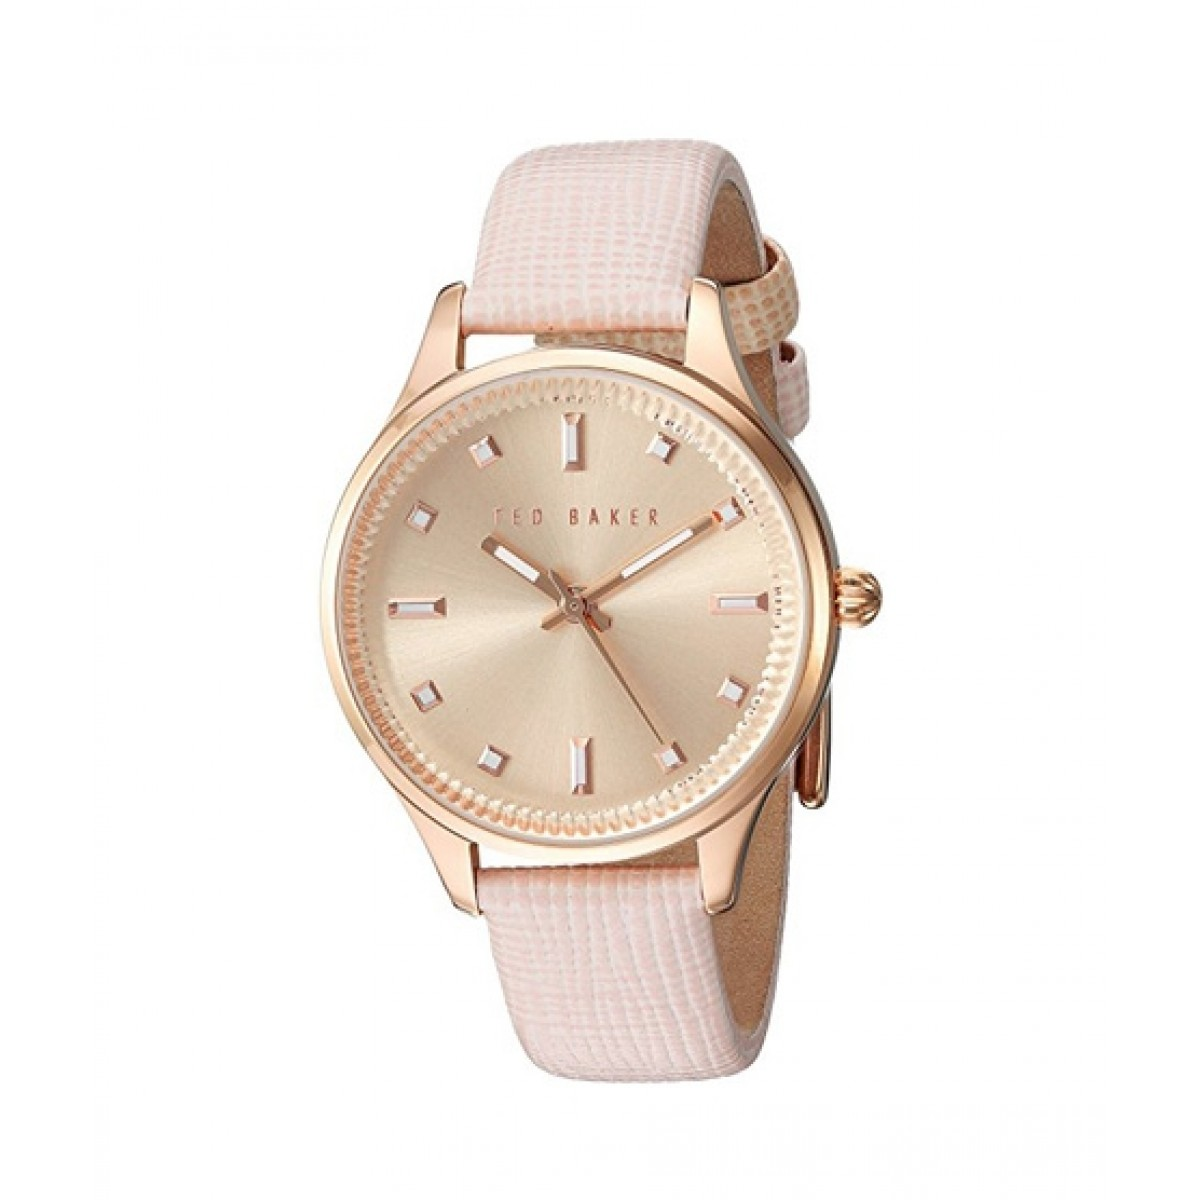 39bf2d497 Ted Baker Sport Women s Watch Price in Pakistan